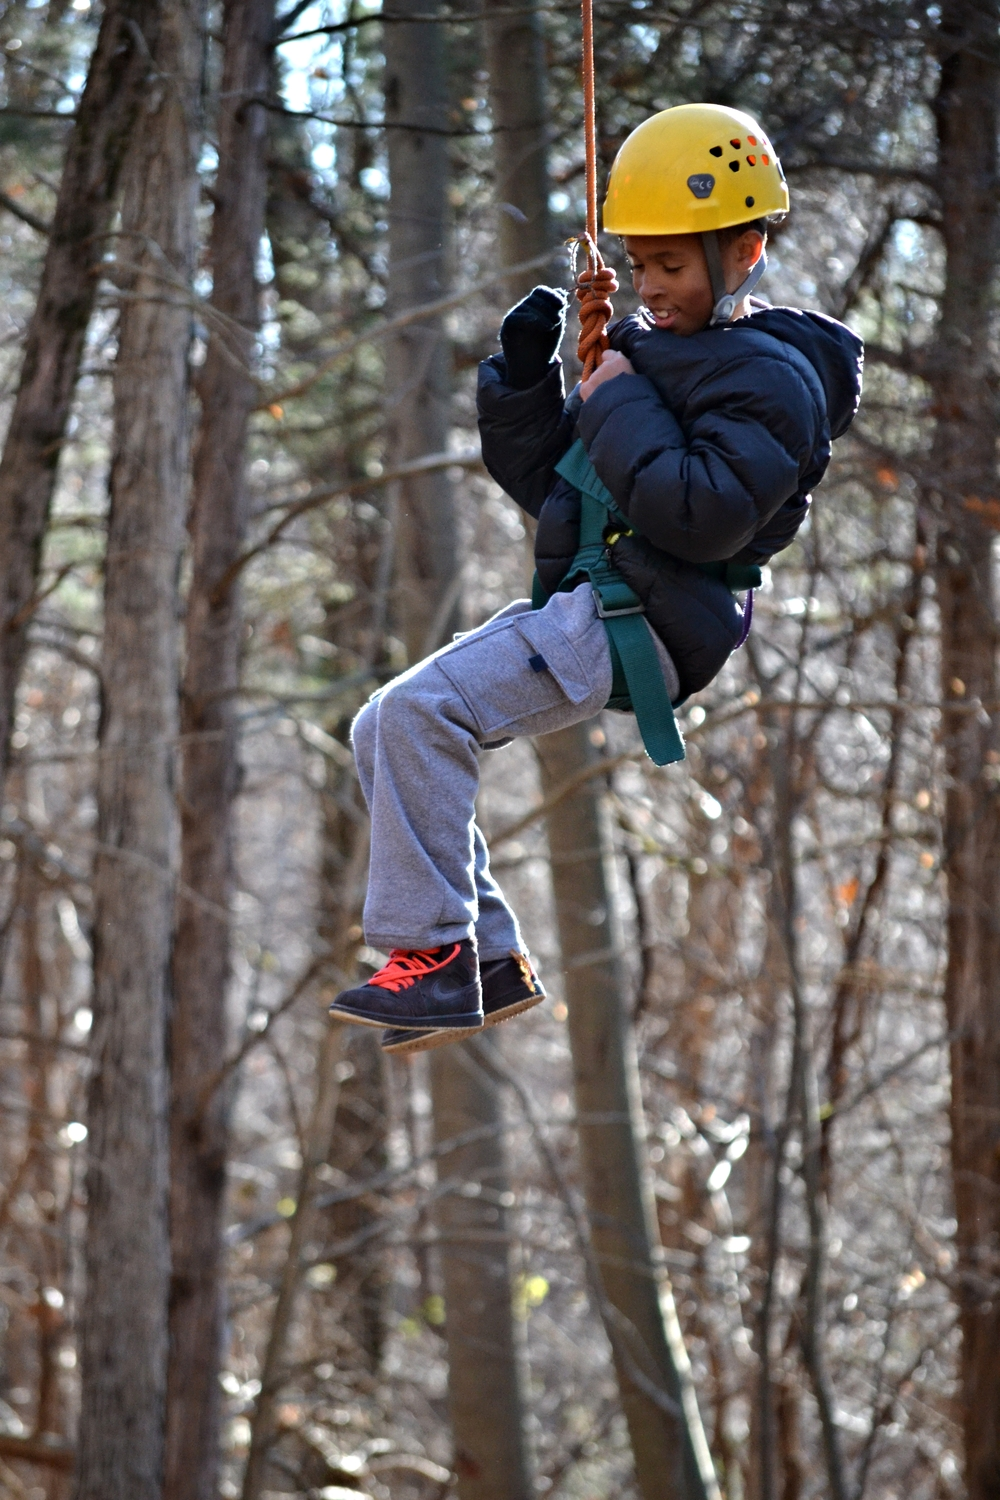 Every fall our 4th graders go upstate on an overnight trip to Camp Ramapo. Ramapo is a highlight of the 4th grade year and a great opportunity for students to develop self-confidence and grow as a community.